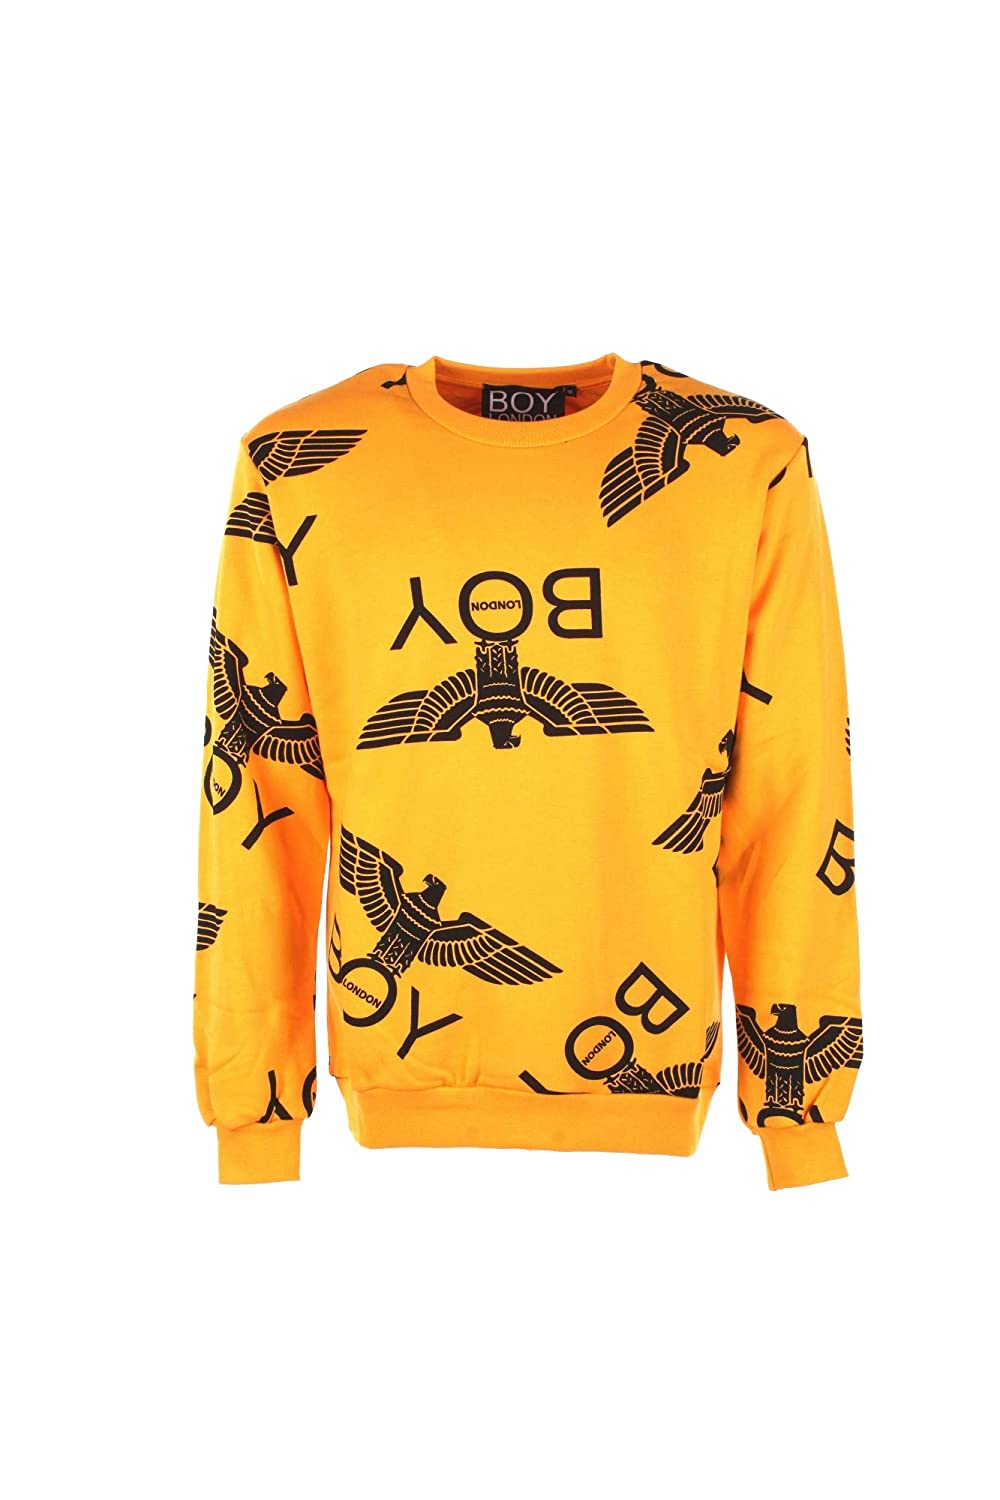 Boy London Felpa  Herren L Giallo Blu5018 Autunno Inverno 2018 19